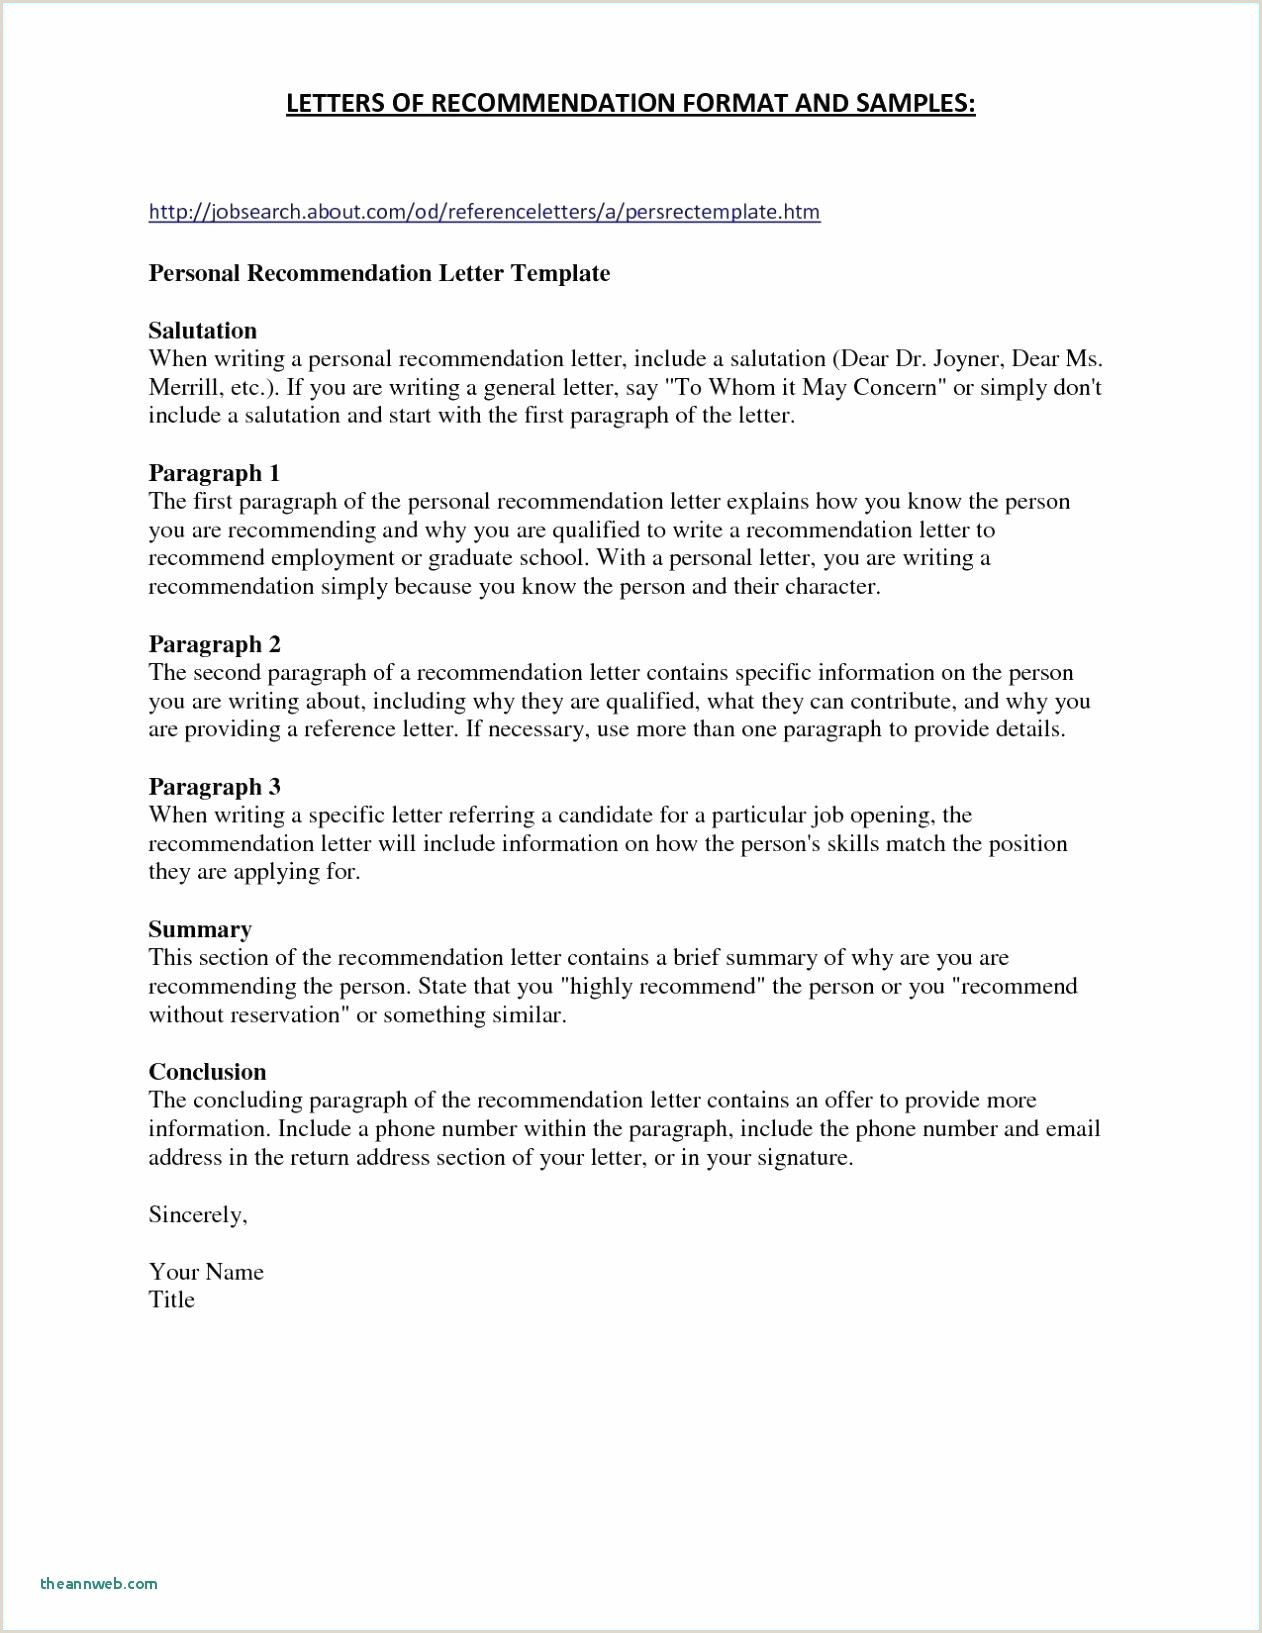 Resume format Examples for Job Pdf Job Resume Template New Easy Samples Write Simple Examples